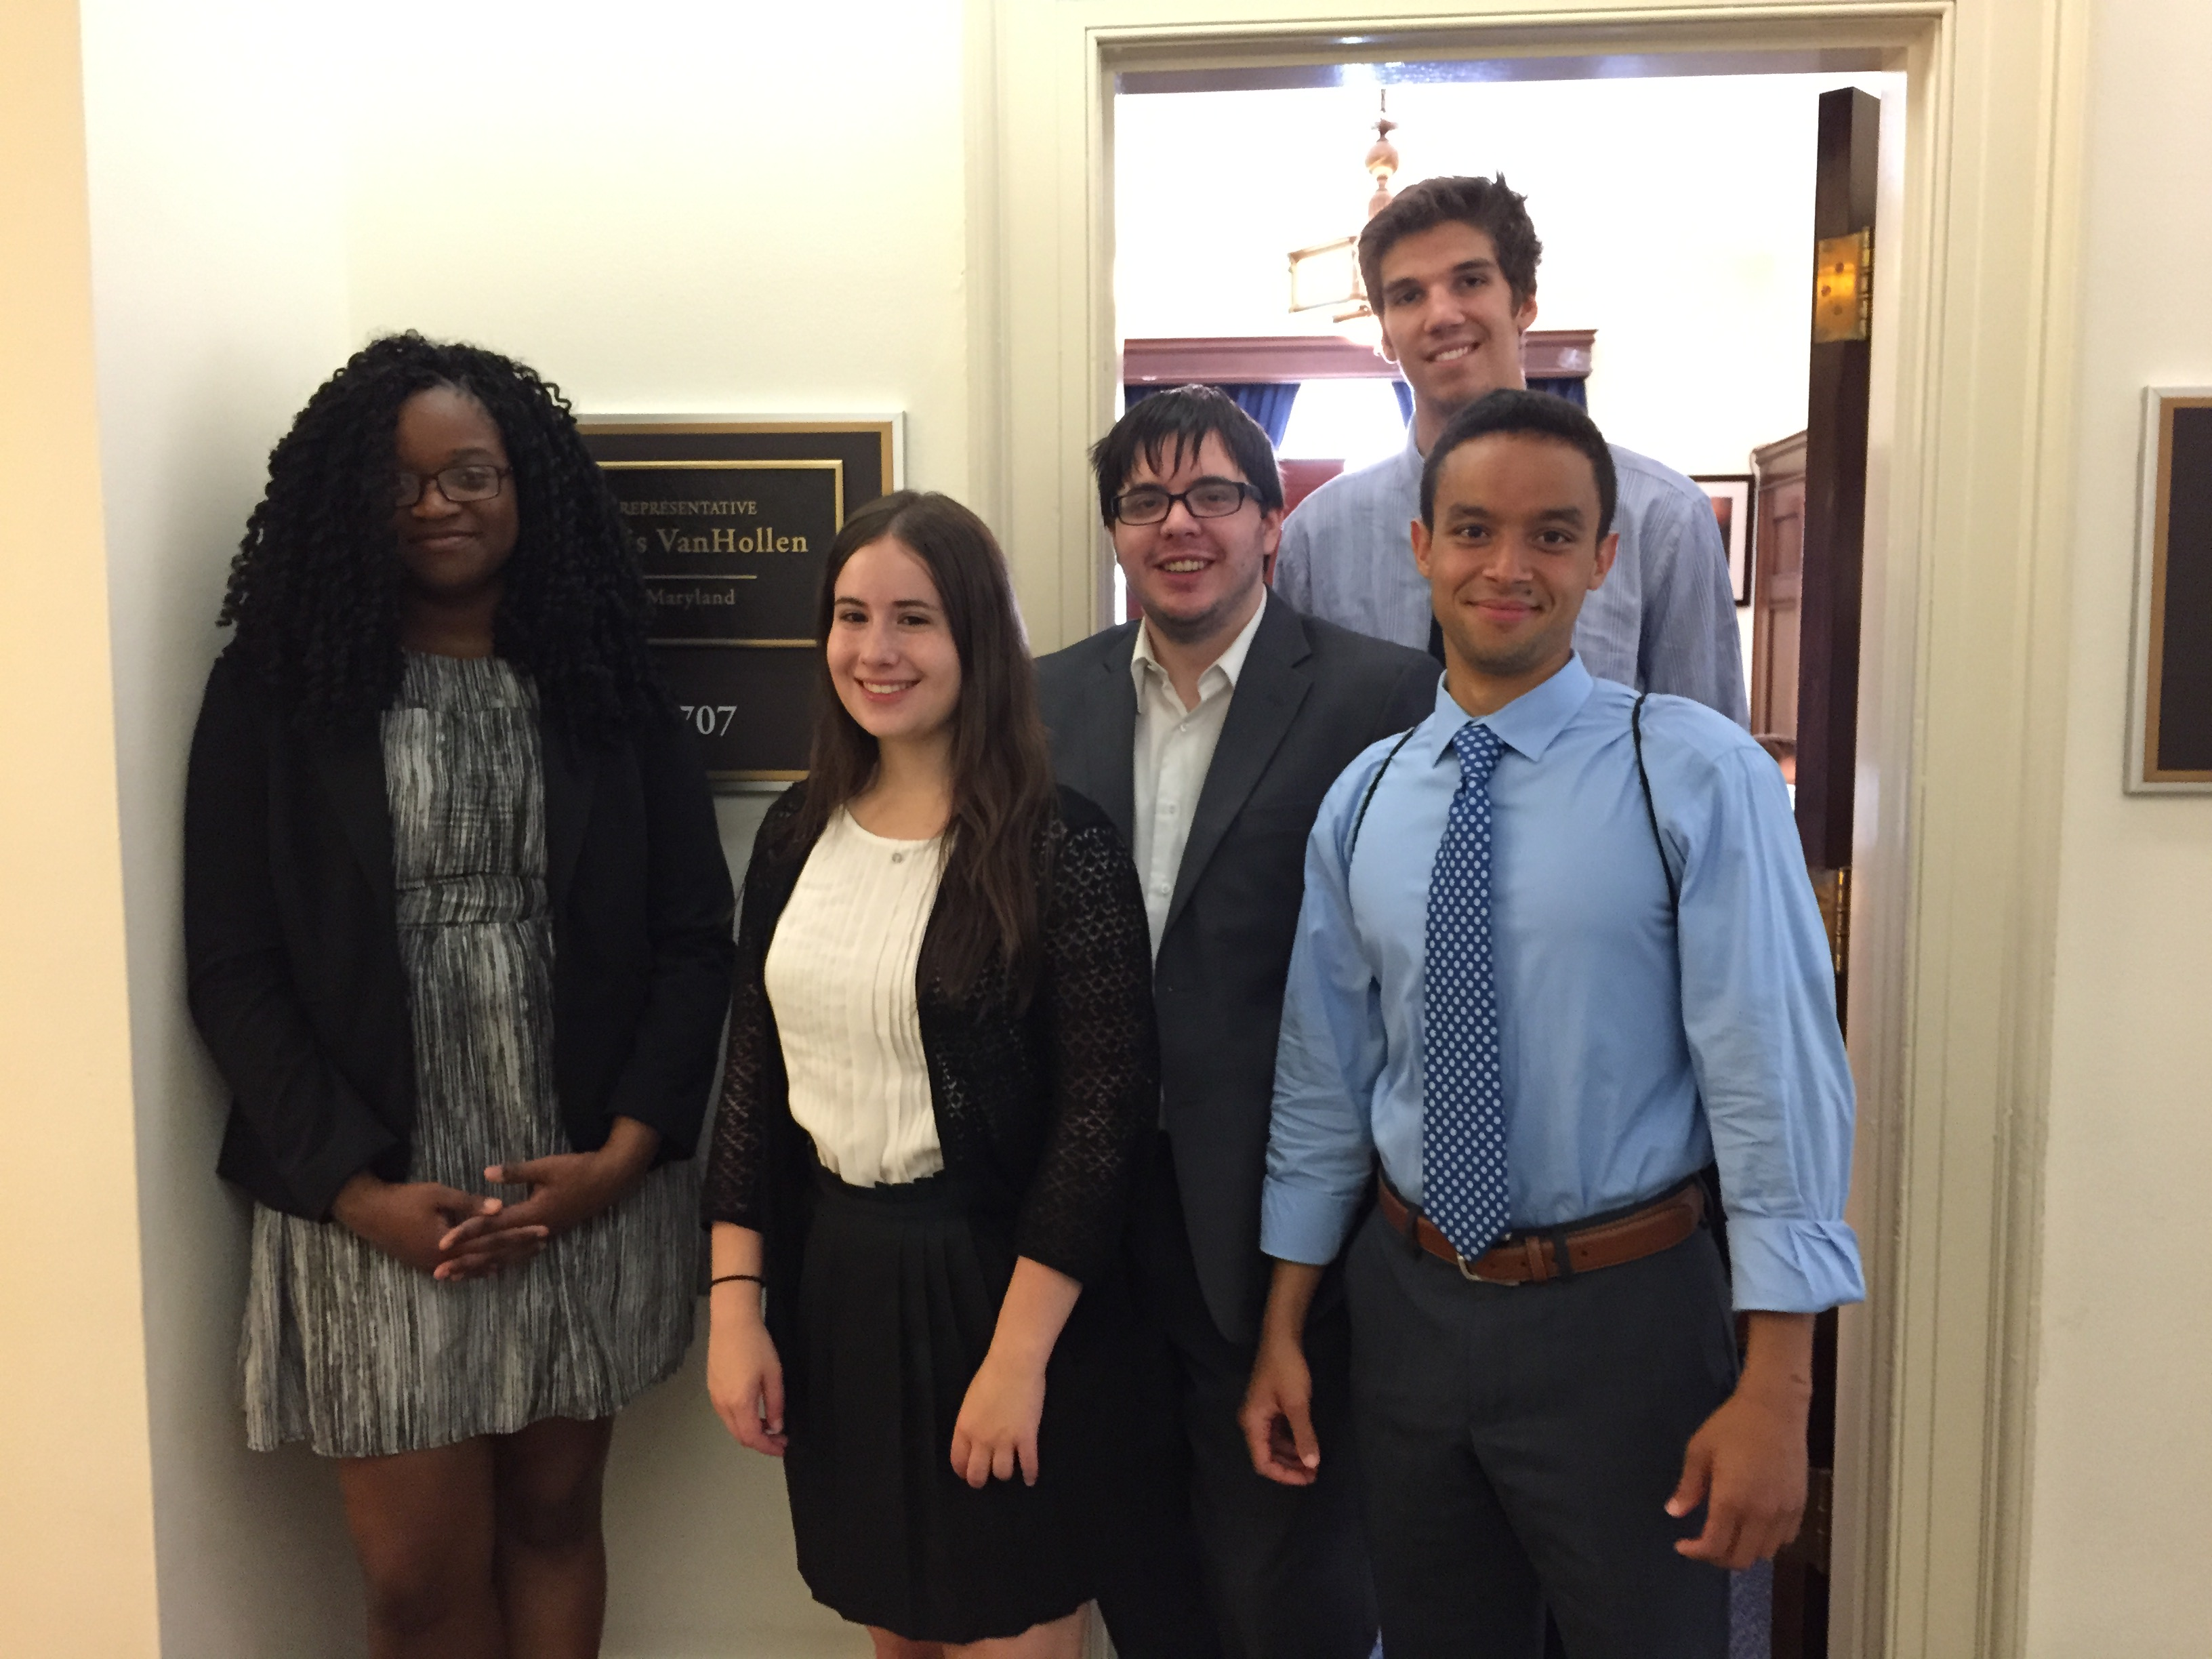 Group of interns in front of Rep. Van Hollen's (MD-8) office